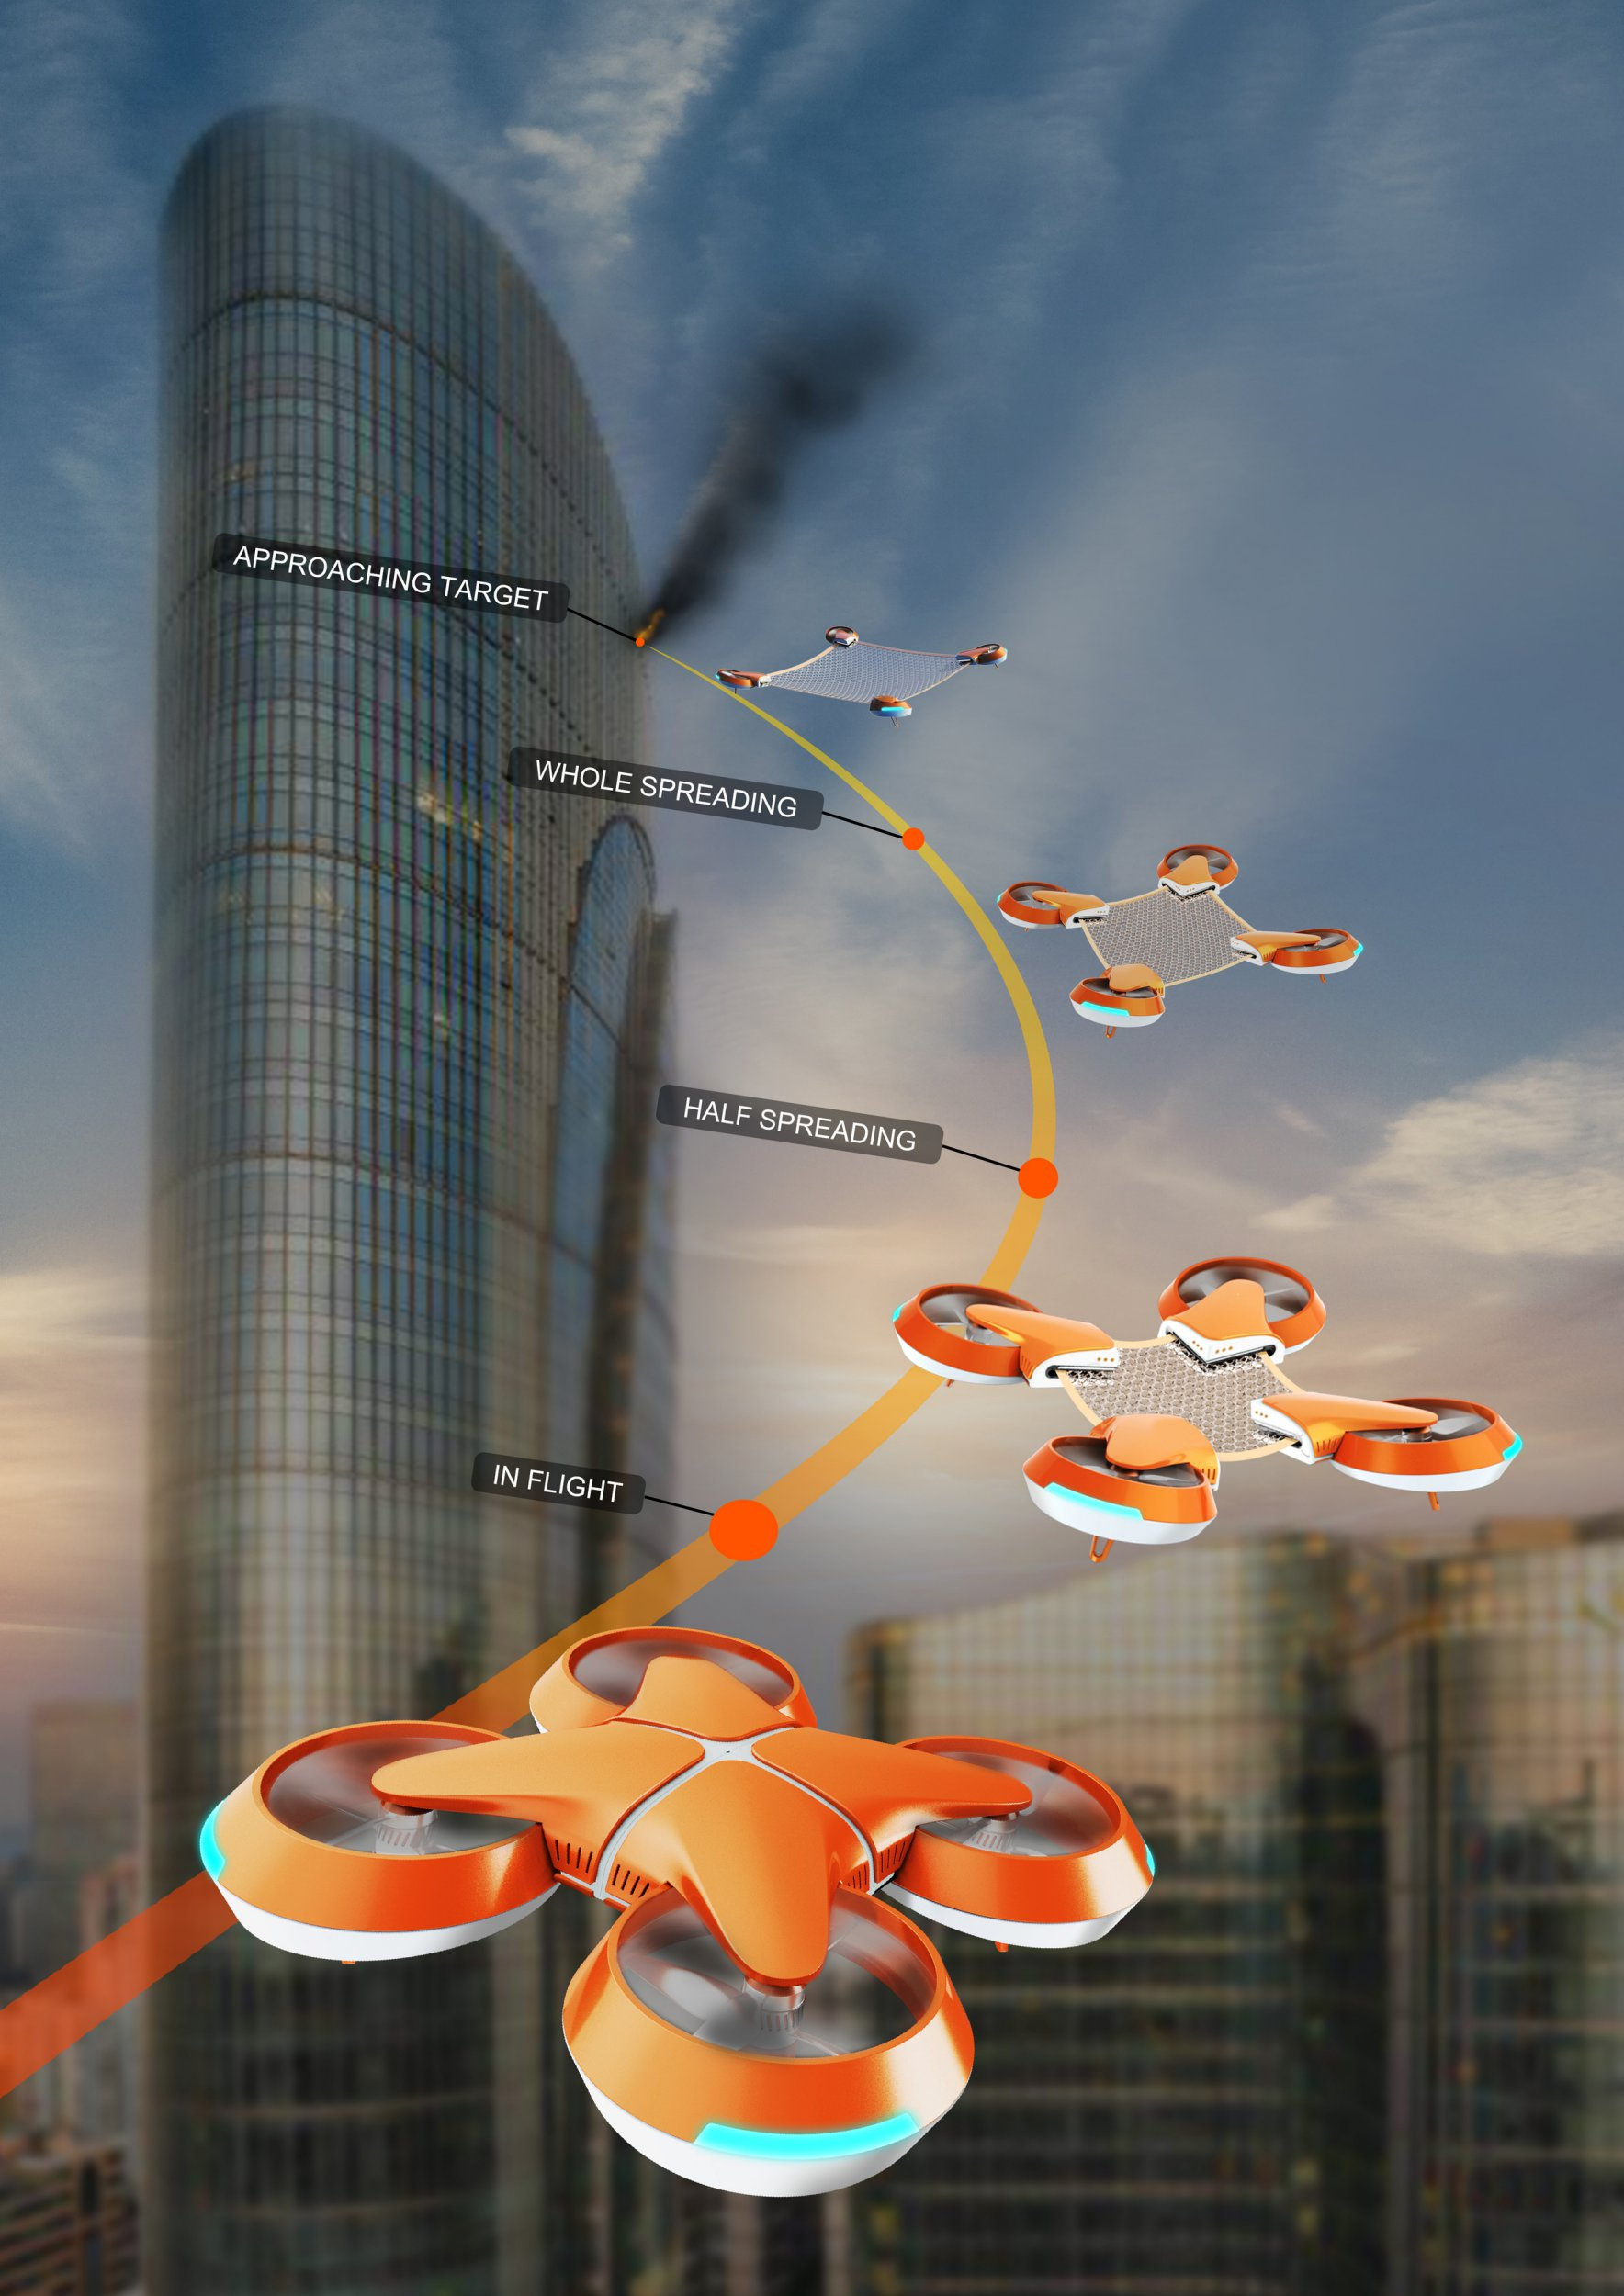 PIC FROM NET GUARD / CATERS - (Pictured: Net Guard high rise fire rescue drones.) - -This fresh design concept has received many plaudits recently, as it suggests using drones to rescue individuals trapped in highrise fires. Named NET GUARD, the designs propose using a self-driven UAV drone to reach those in need of rescuing. According to the plans, a distress signal would be received before the drone, using GPS to pinpoint the location of the fire, would then head to the necessary building, avoiding traffic below. Once close enough to the building, the drone would then unfold into four propeller-powered parts, a safety net pulled tight in the center. - SEE CATERS COPY